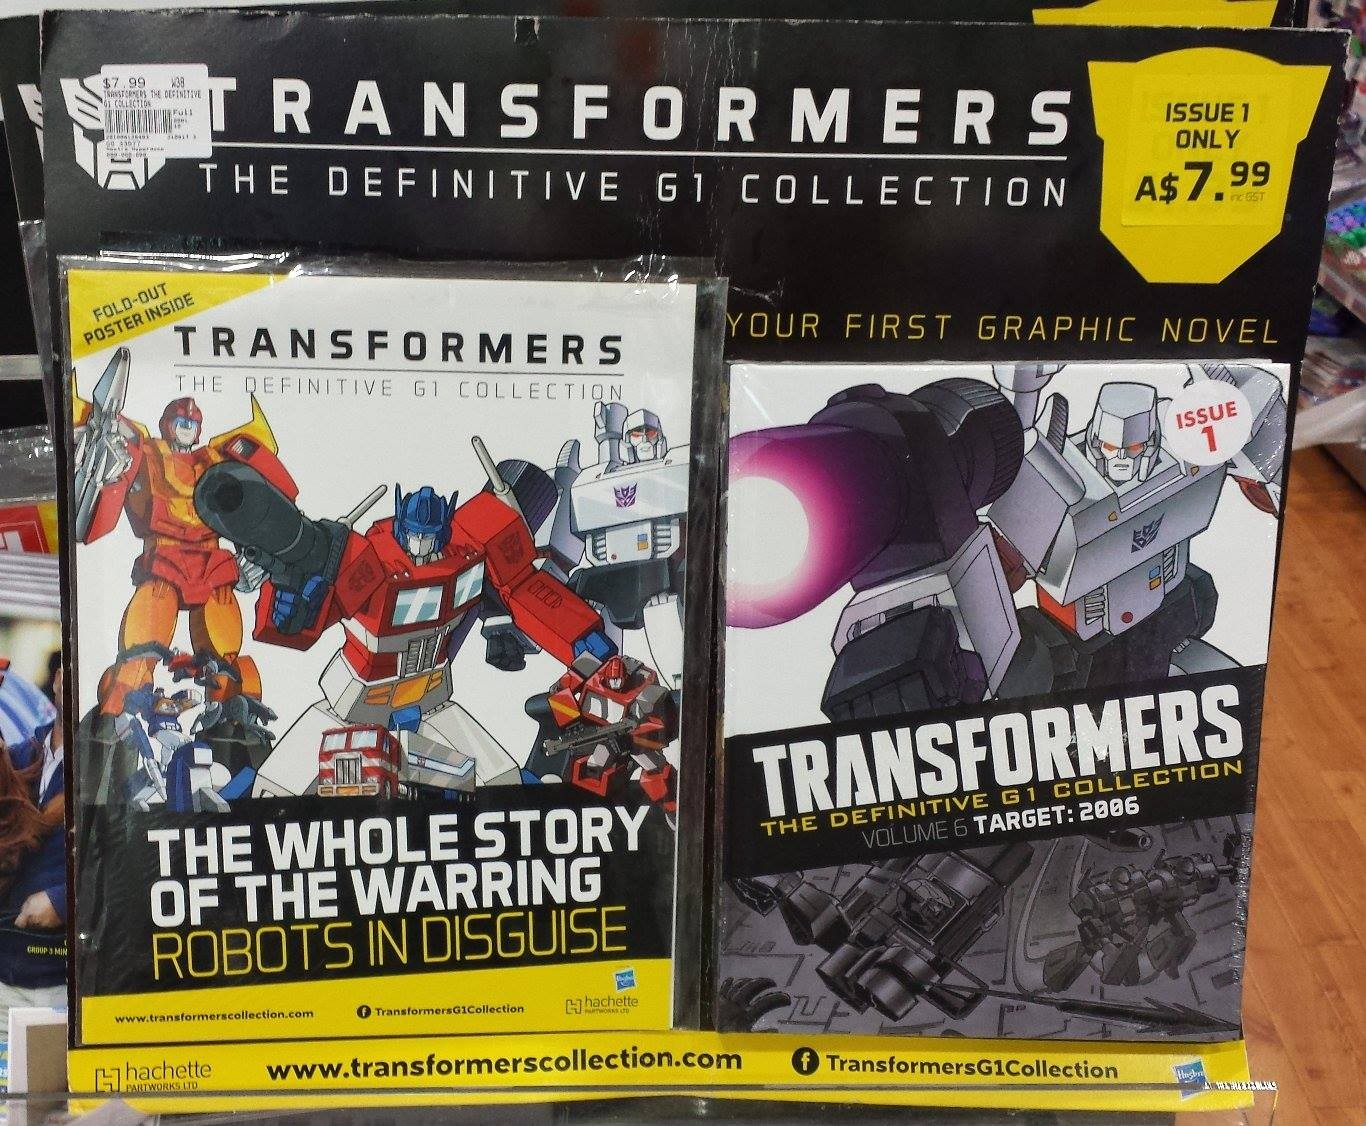 Transformers News: Transformers: The Definitive G1 Comics Collection Out in Australia